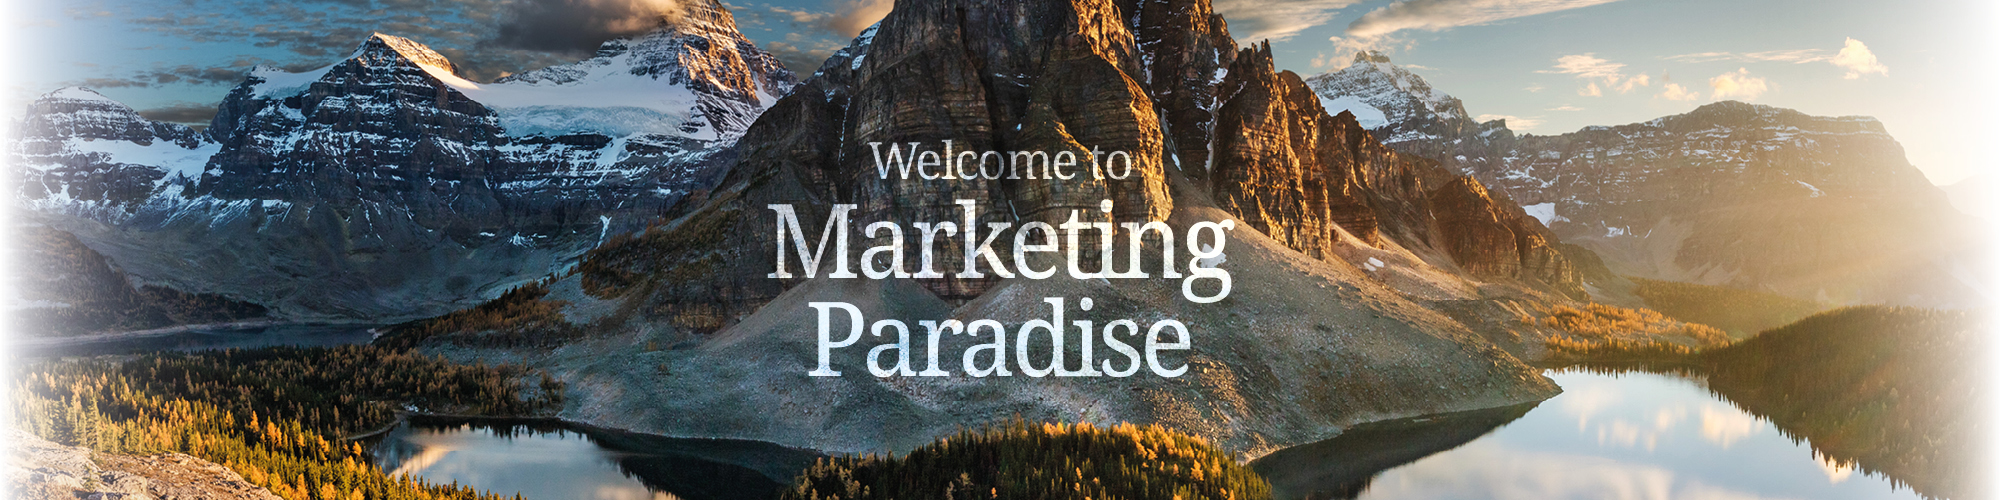 Welcome to Marketing Paradise